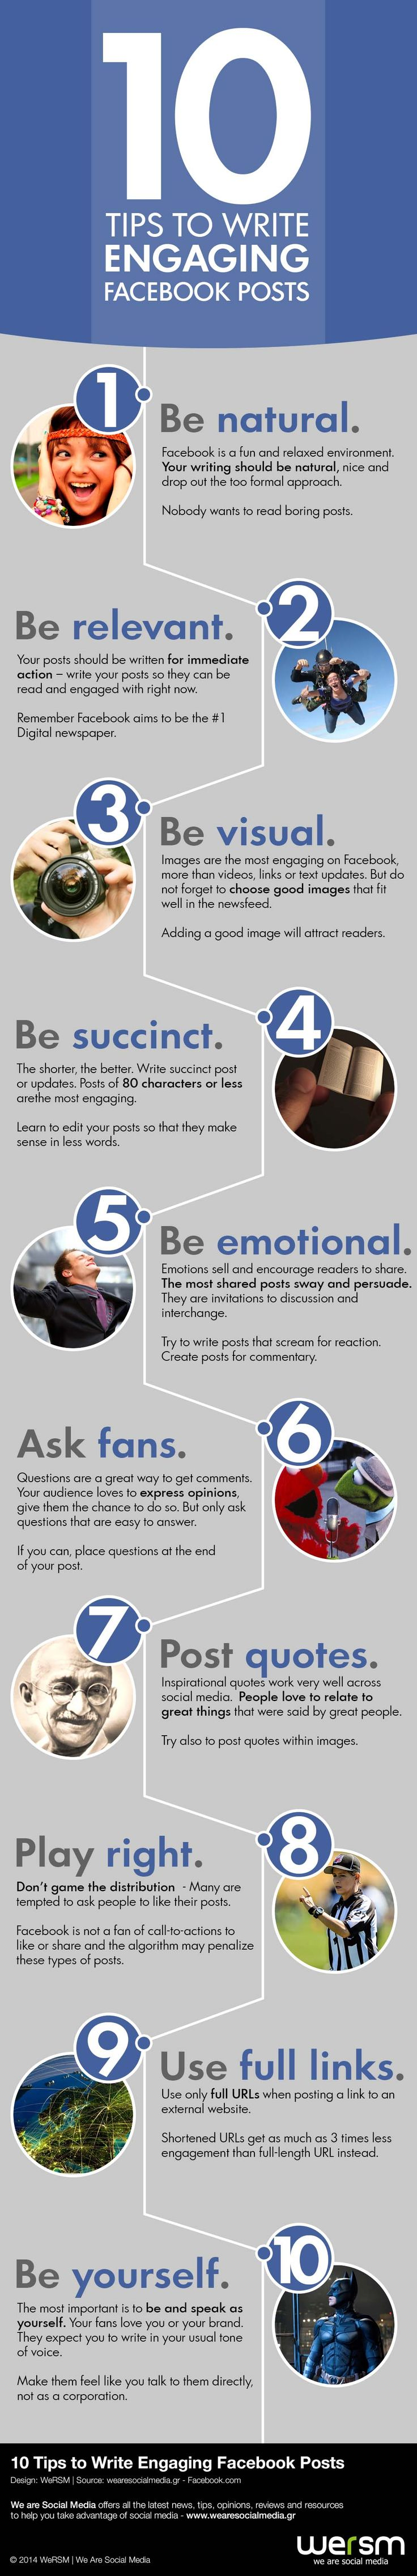 Infographic 10 Tips to Write Engaging Facebook Posts | Infographics Creator